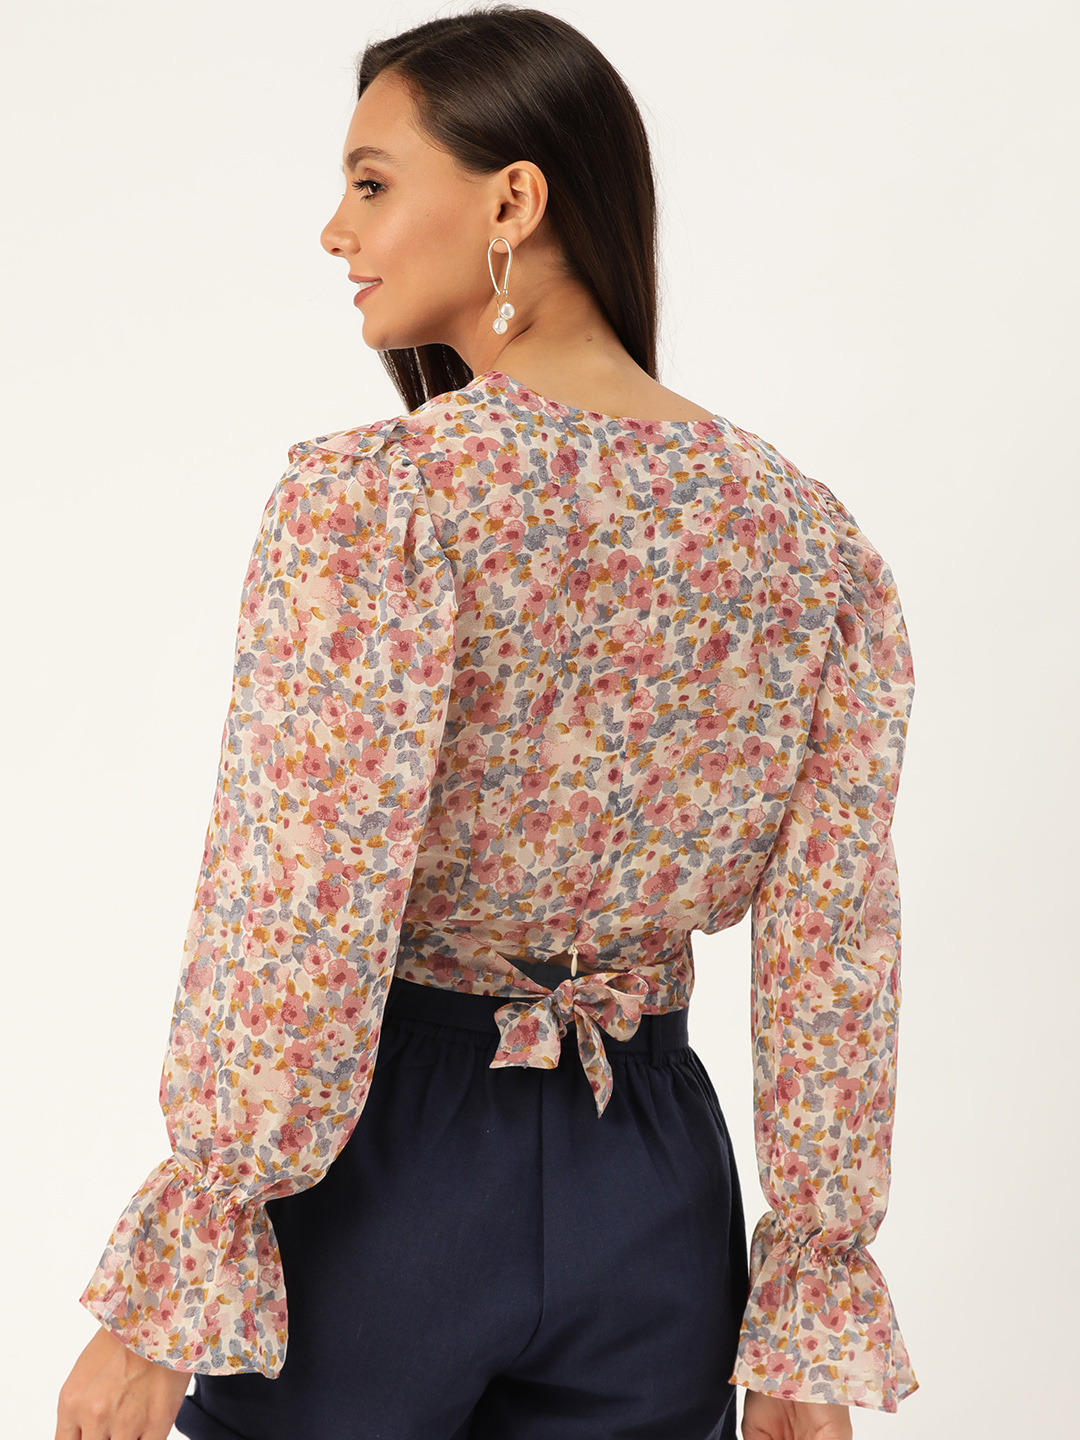 Tops-Wrapped With Florals Top3